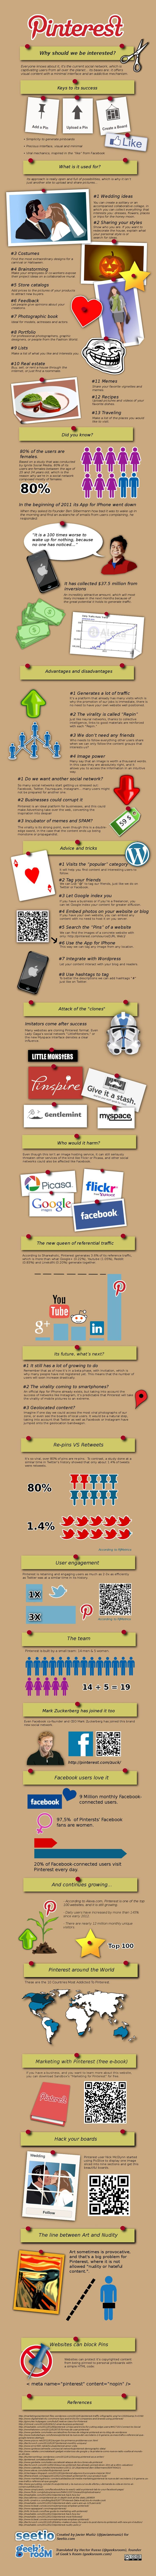 Why you should be interested in Pinterest A great infographic for beginners www.socialmediamamma.com